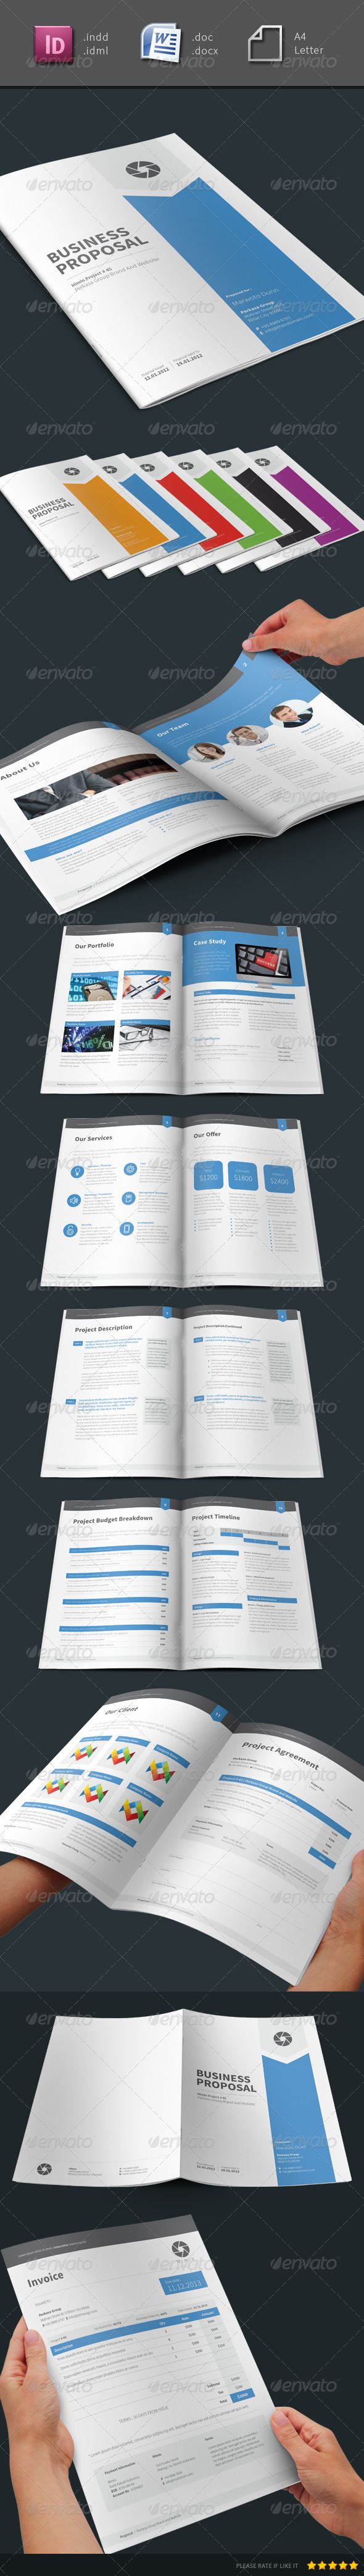 GraphicRiver Mimin Proposal 6262285